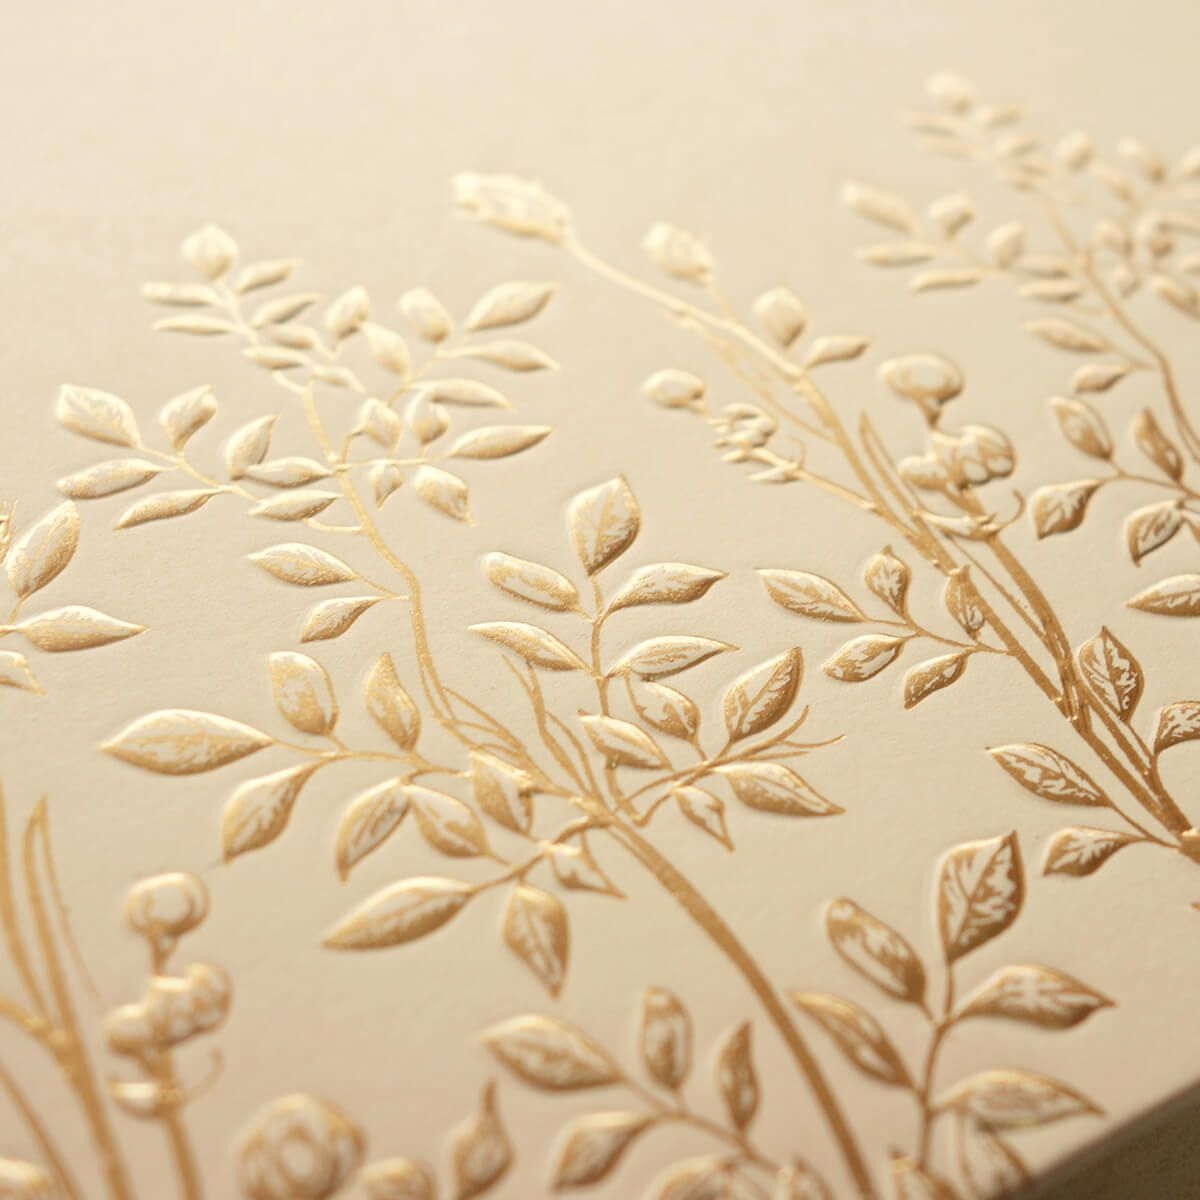 Foil emboss floral detail on luxe invitation Insta